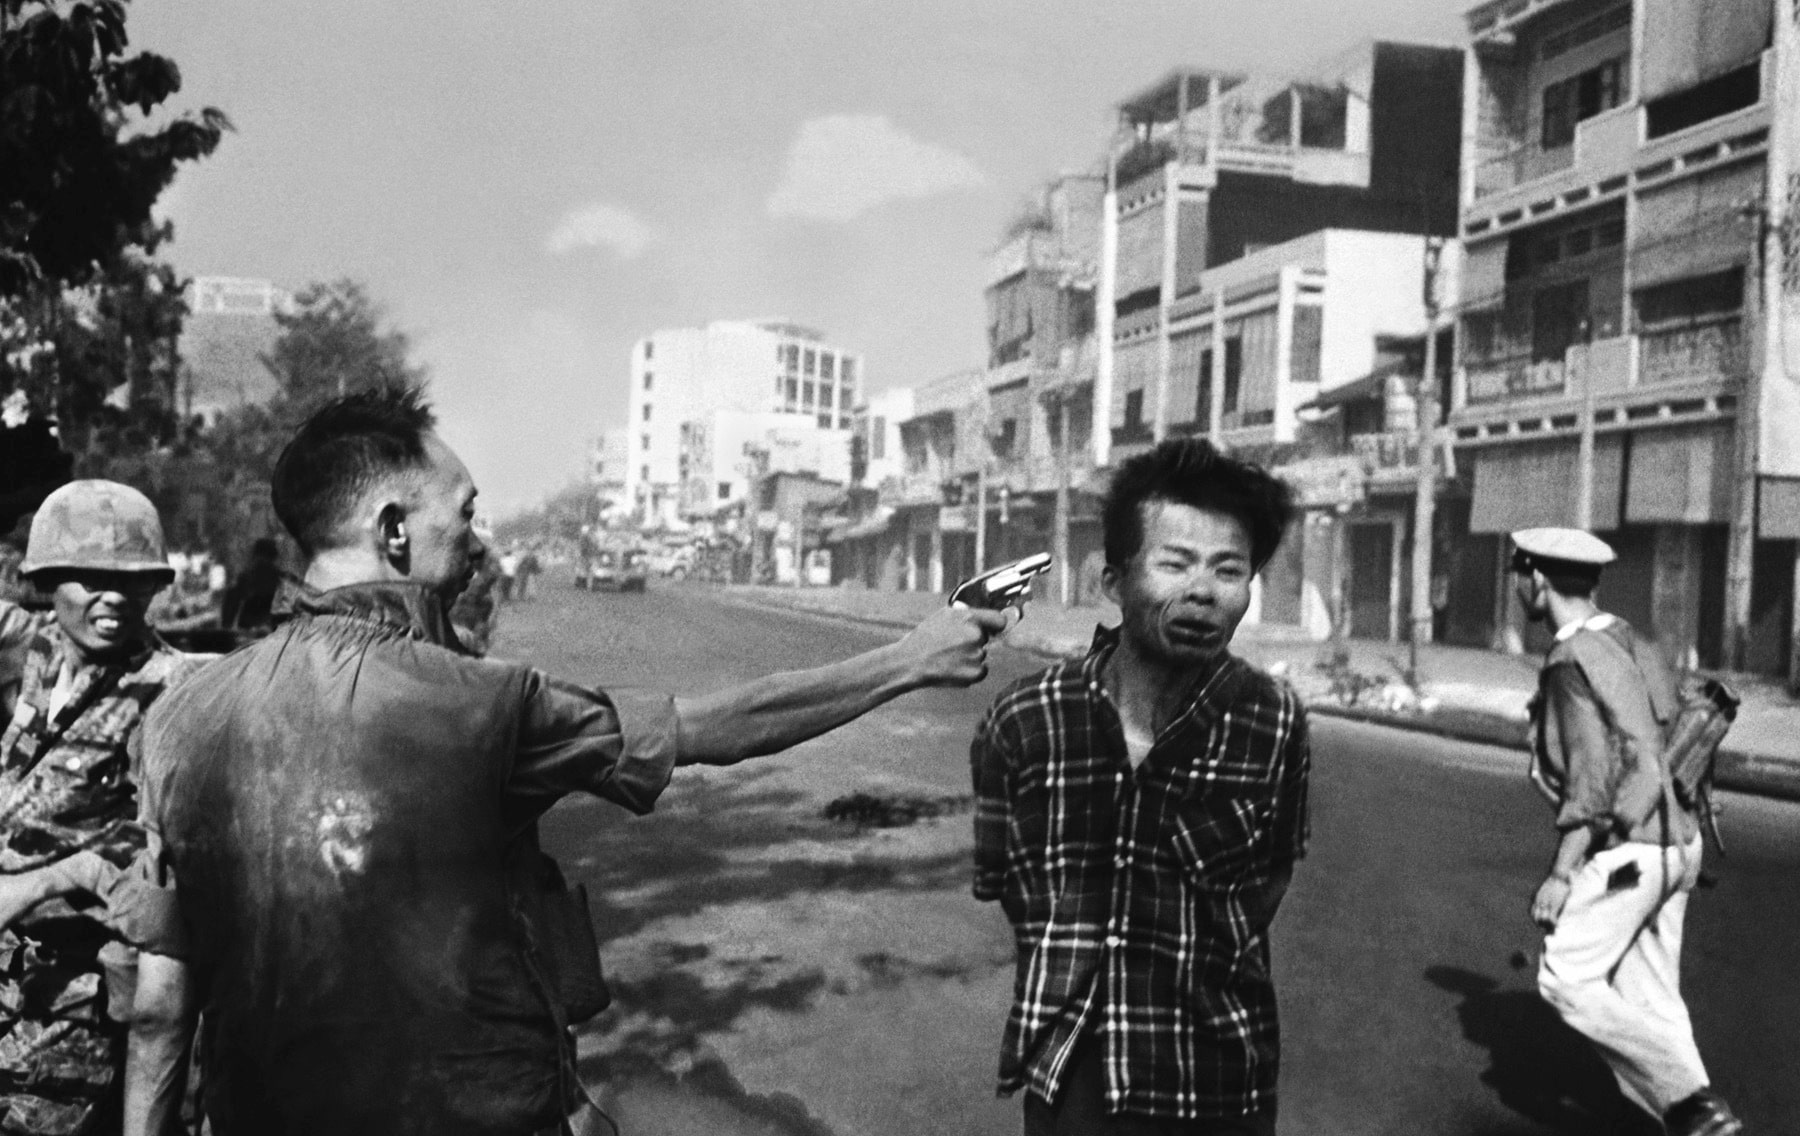 The South Vietnamese General Nguyen Ngoc Loan, chief of the national police, fires his pistol into the head of suspected Viet Cong officer Nguyen Van Lem (also known as Bay Lop) on a Saigon street on February 1, 1968, early in the Tet Offensive. Lem was suspected of commanding a death squad which had targeted South Vietnamese police officers that day. (Eddie Adams/AP). (CC BY 2.0). Source: flickr.com